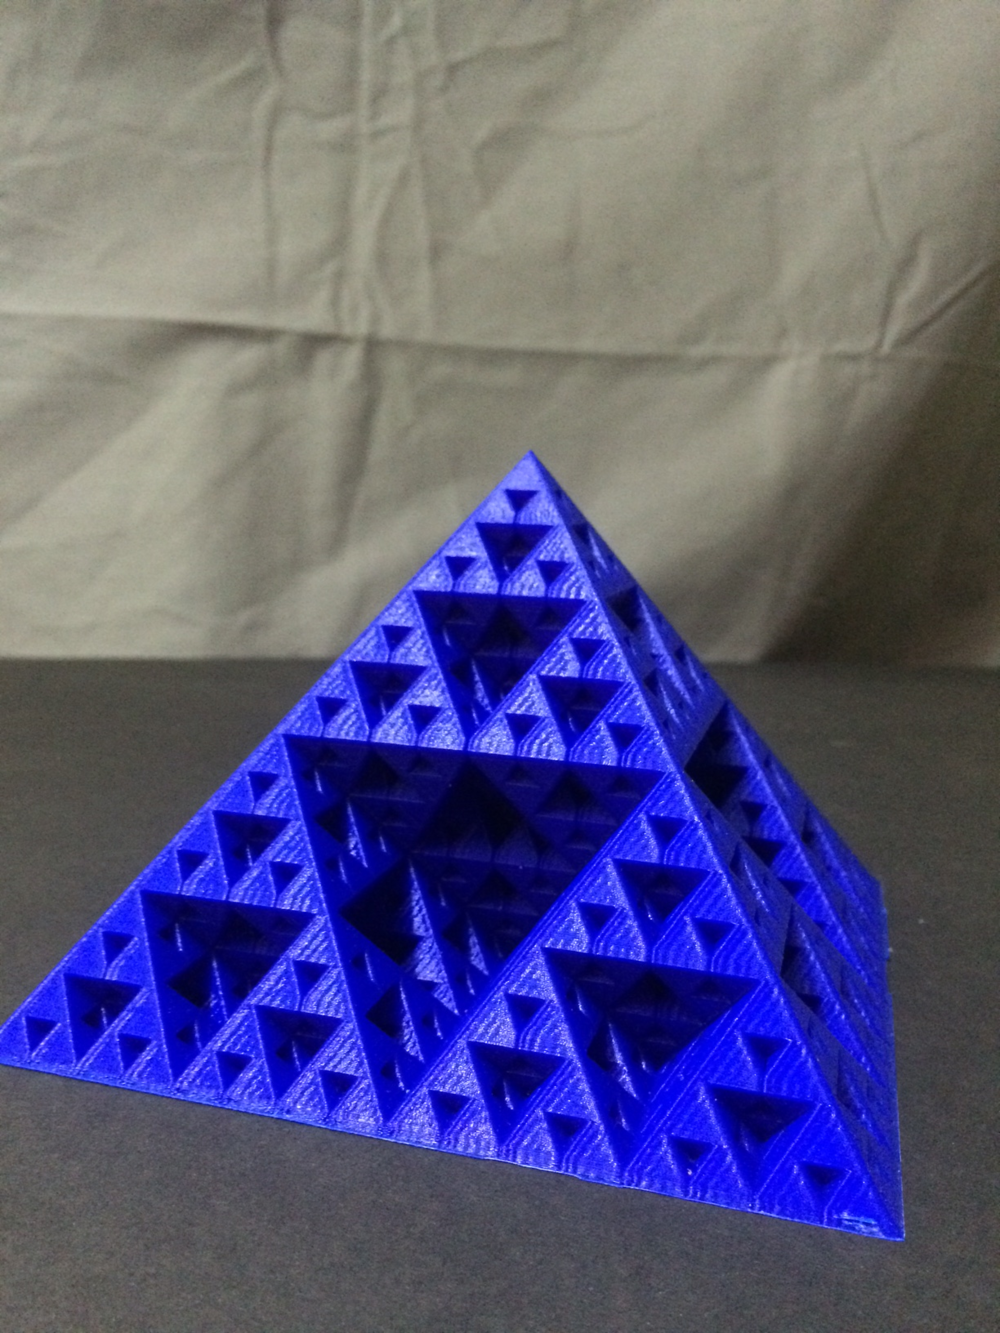 Level 4 Sierpinski Pyramid